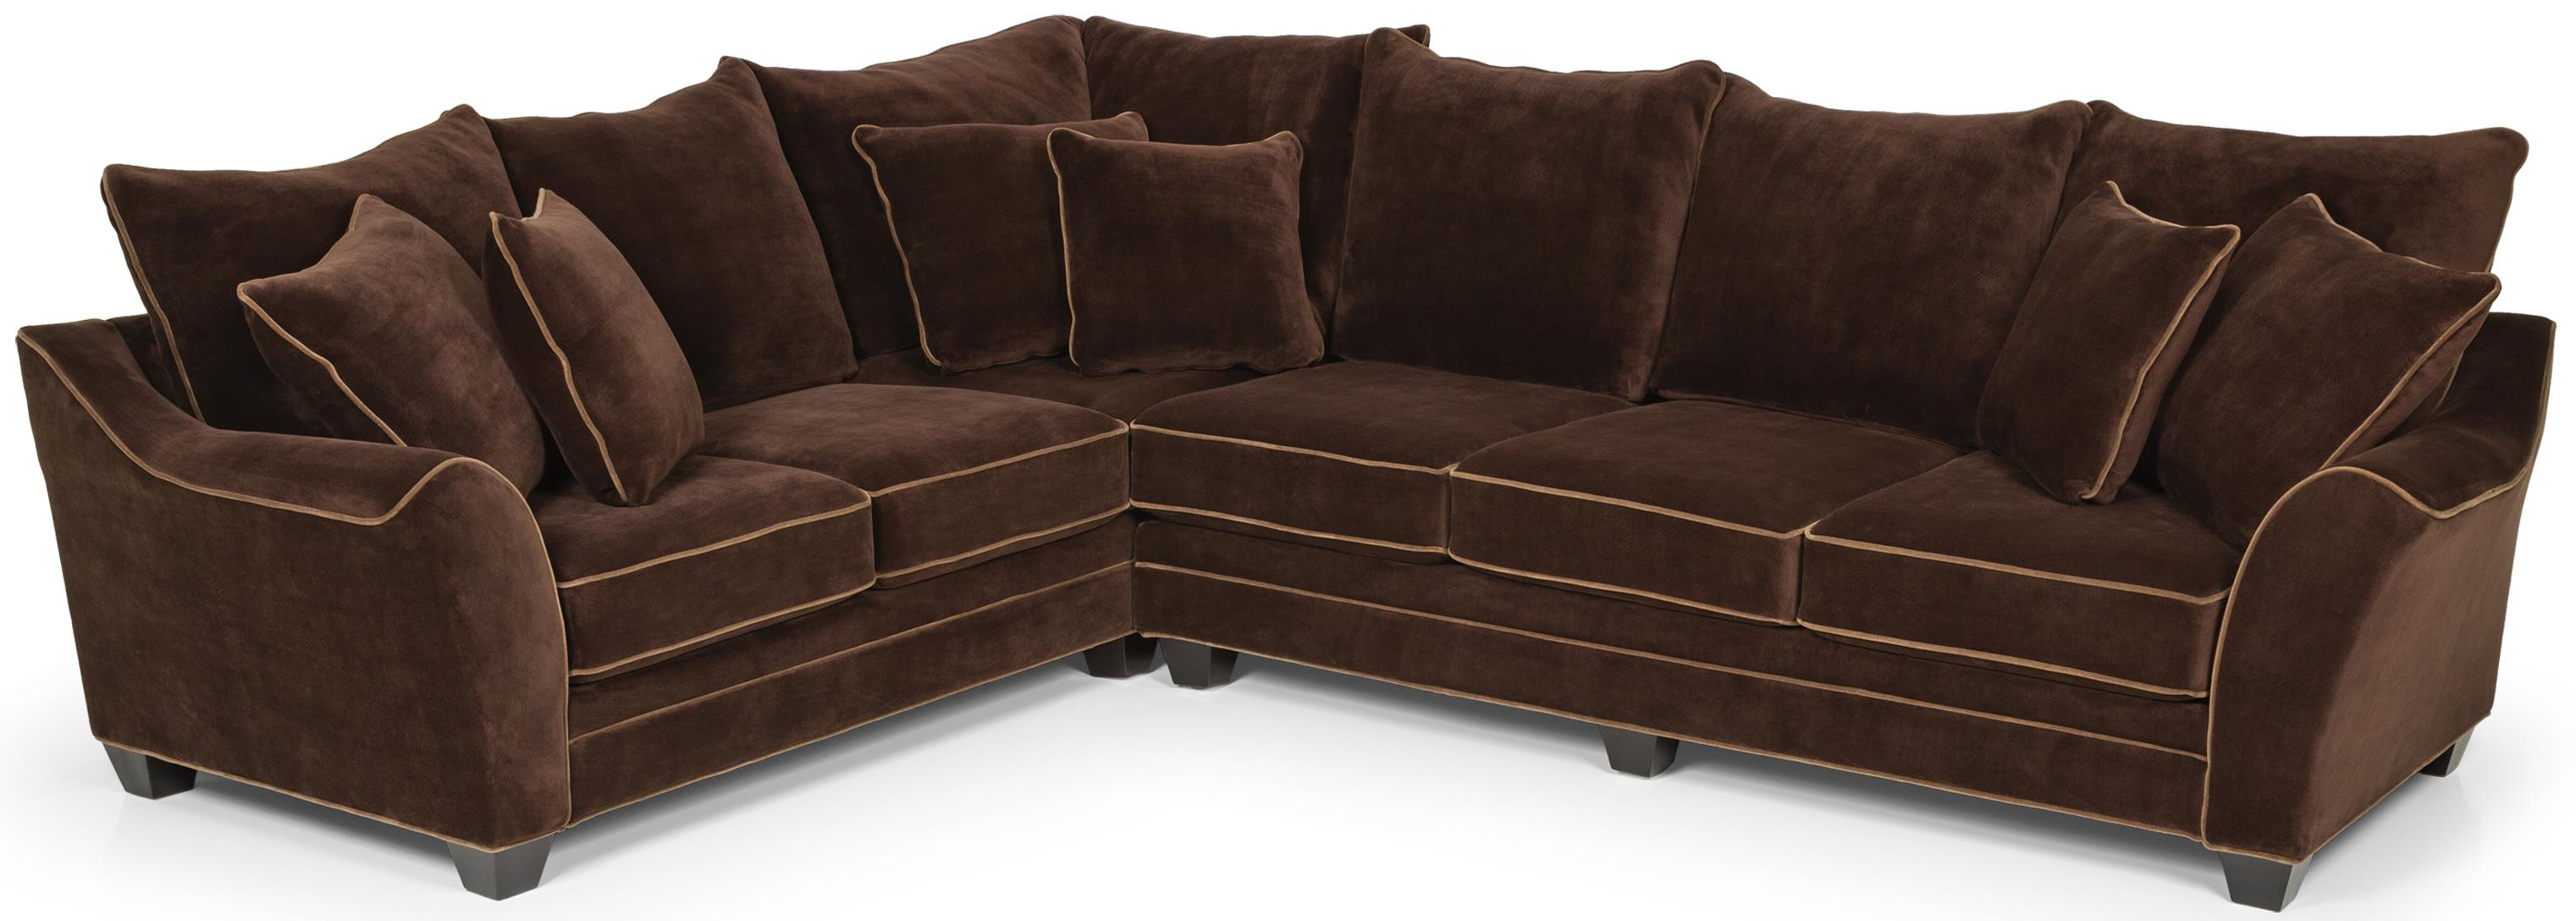 456 Sectional Sofa  by Stanton at Wilson's Furniture